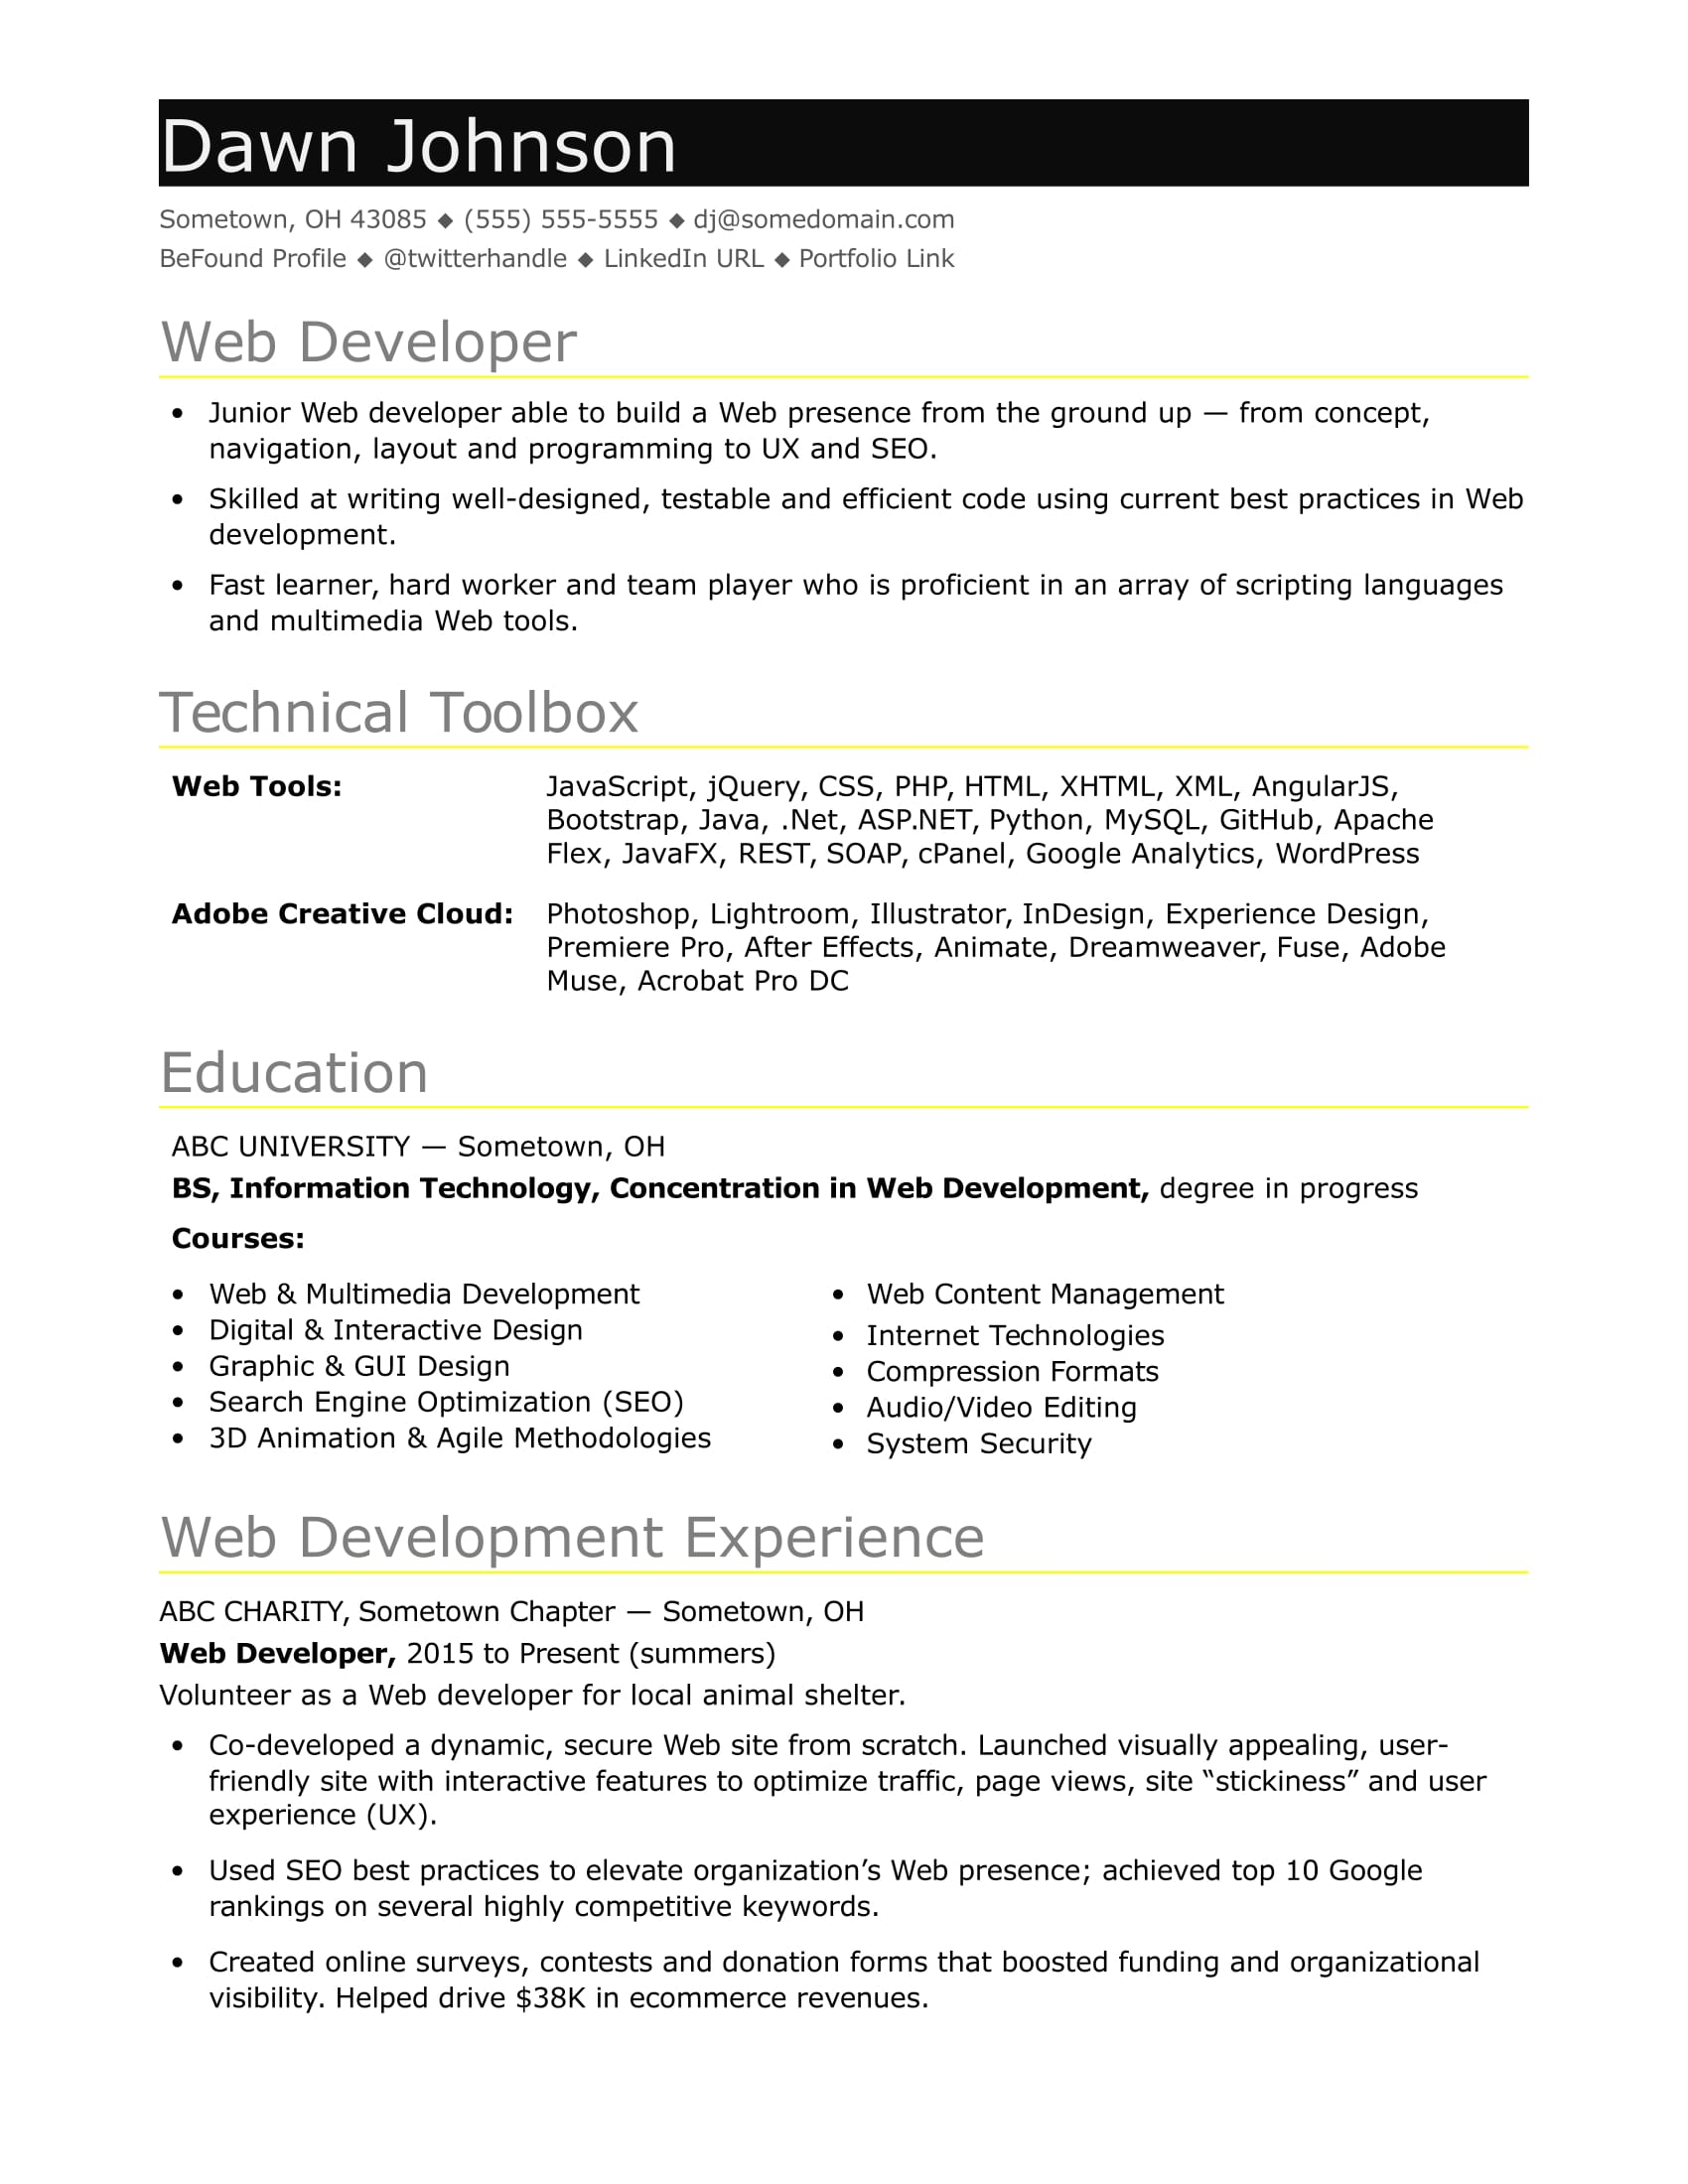 sample resume for an entry level it developer monster web fresher work abroad college Resume Sample Resume For Web Developer Fresher